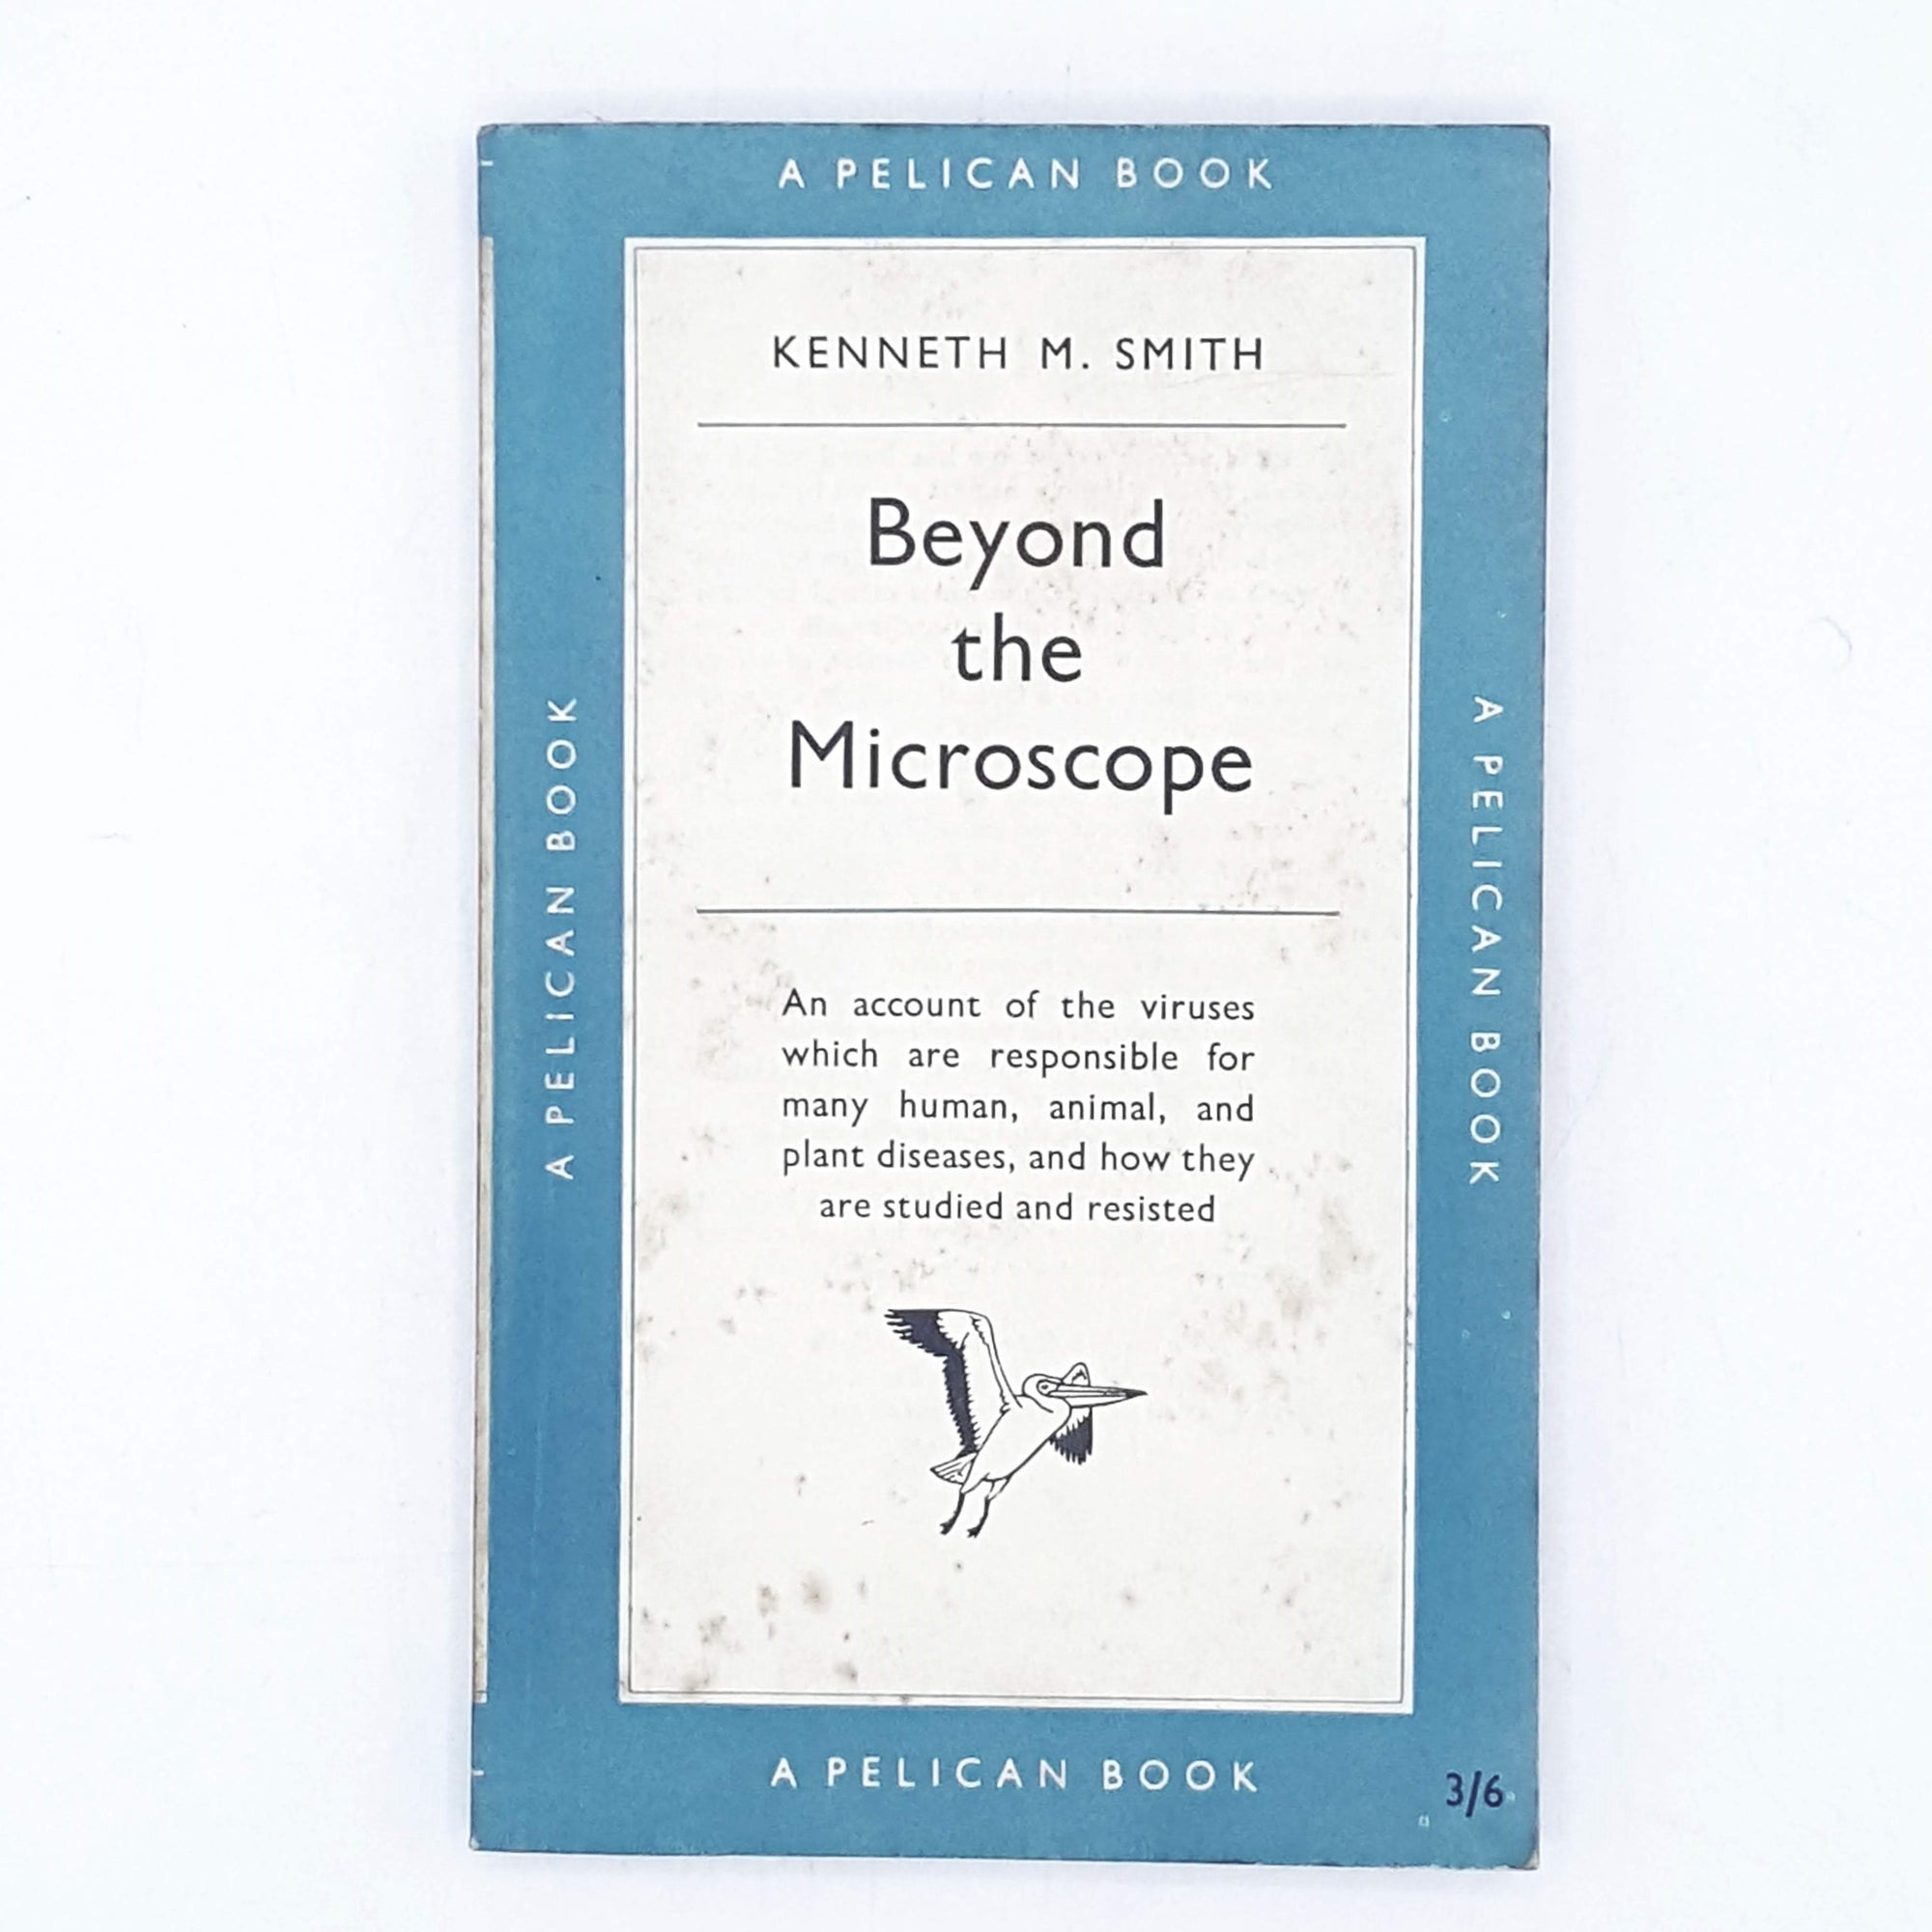 Beyond the Microscope by Kenneth M. Smith 1957